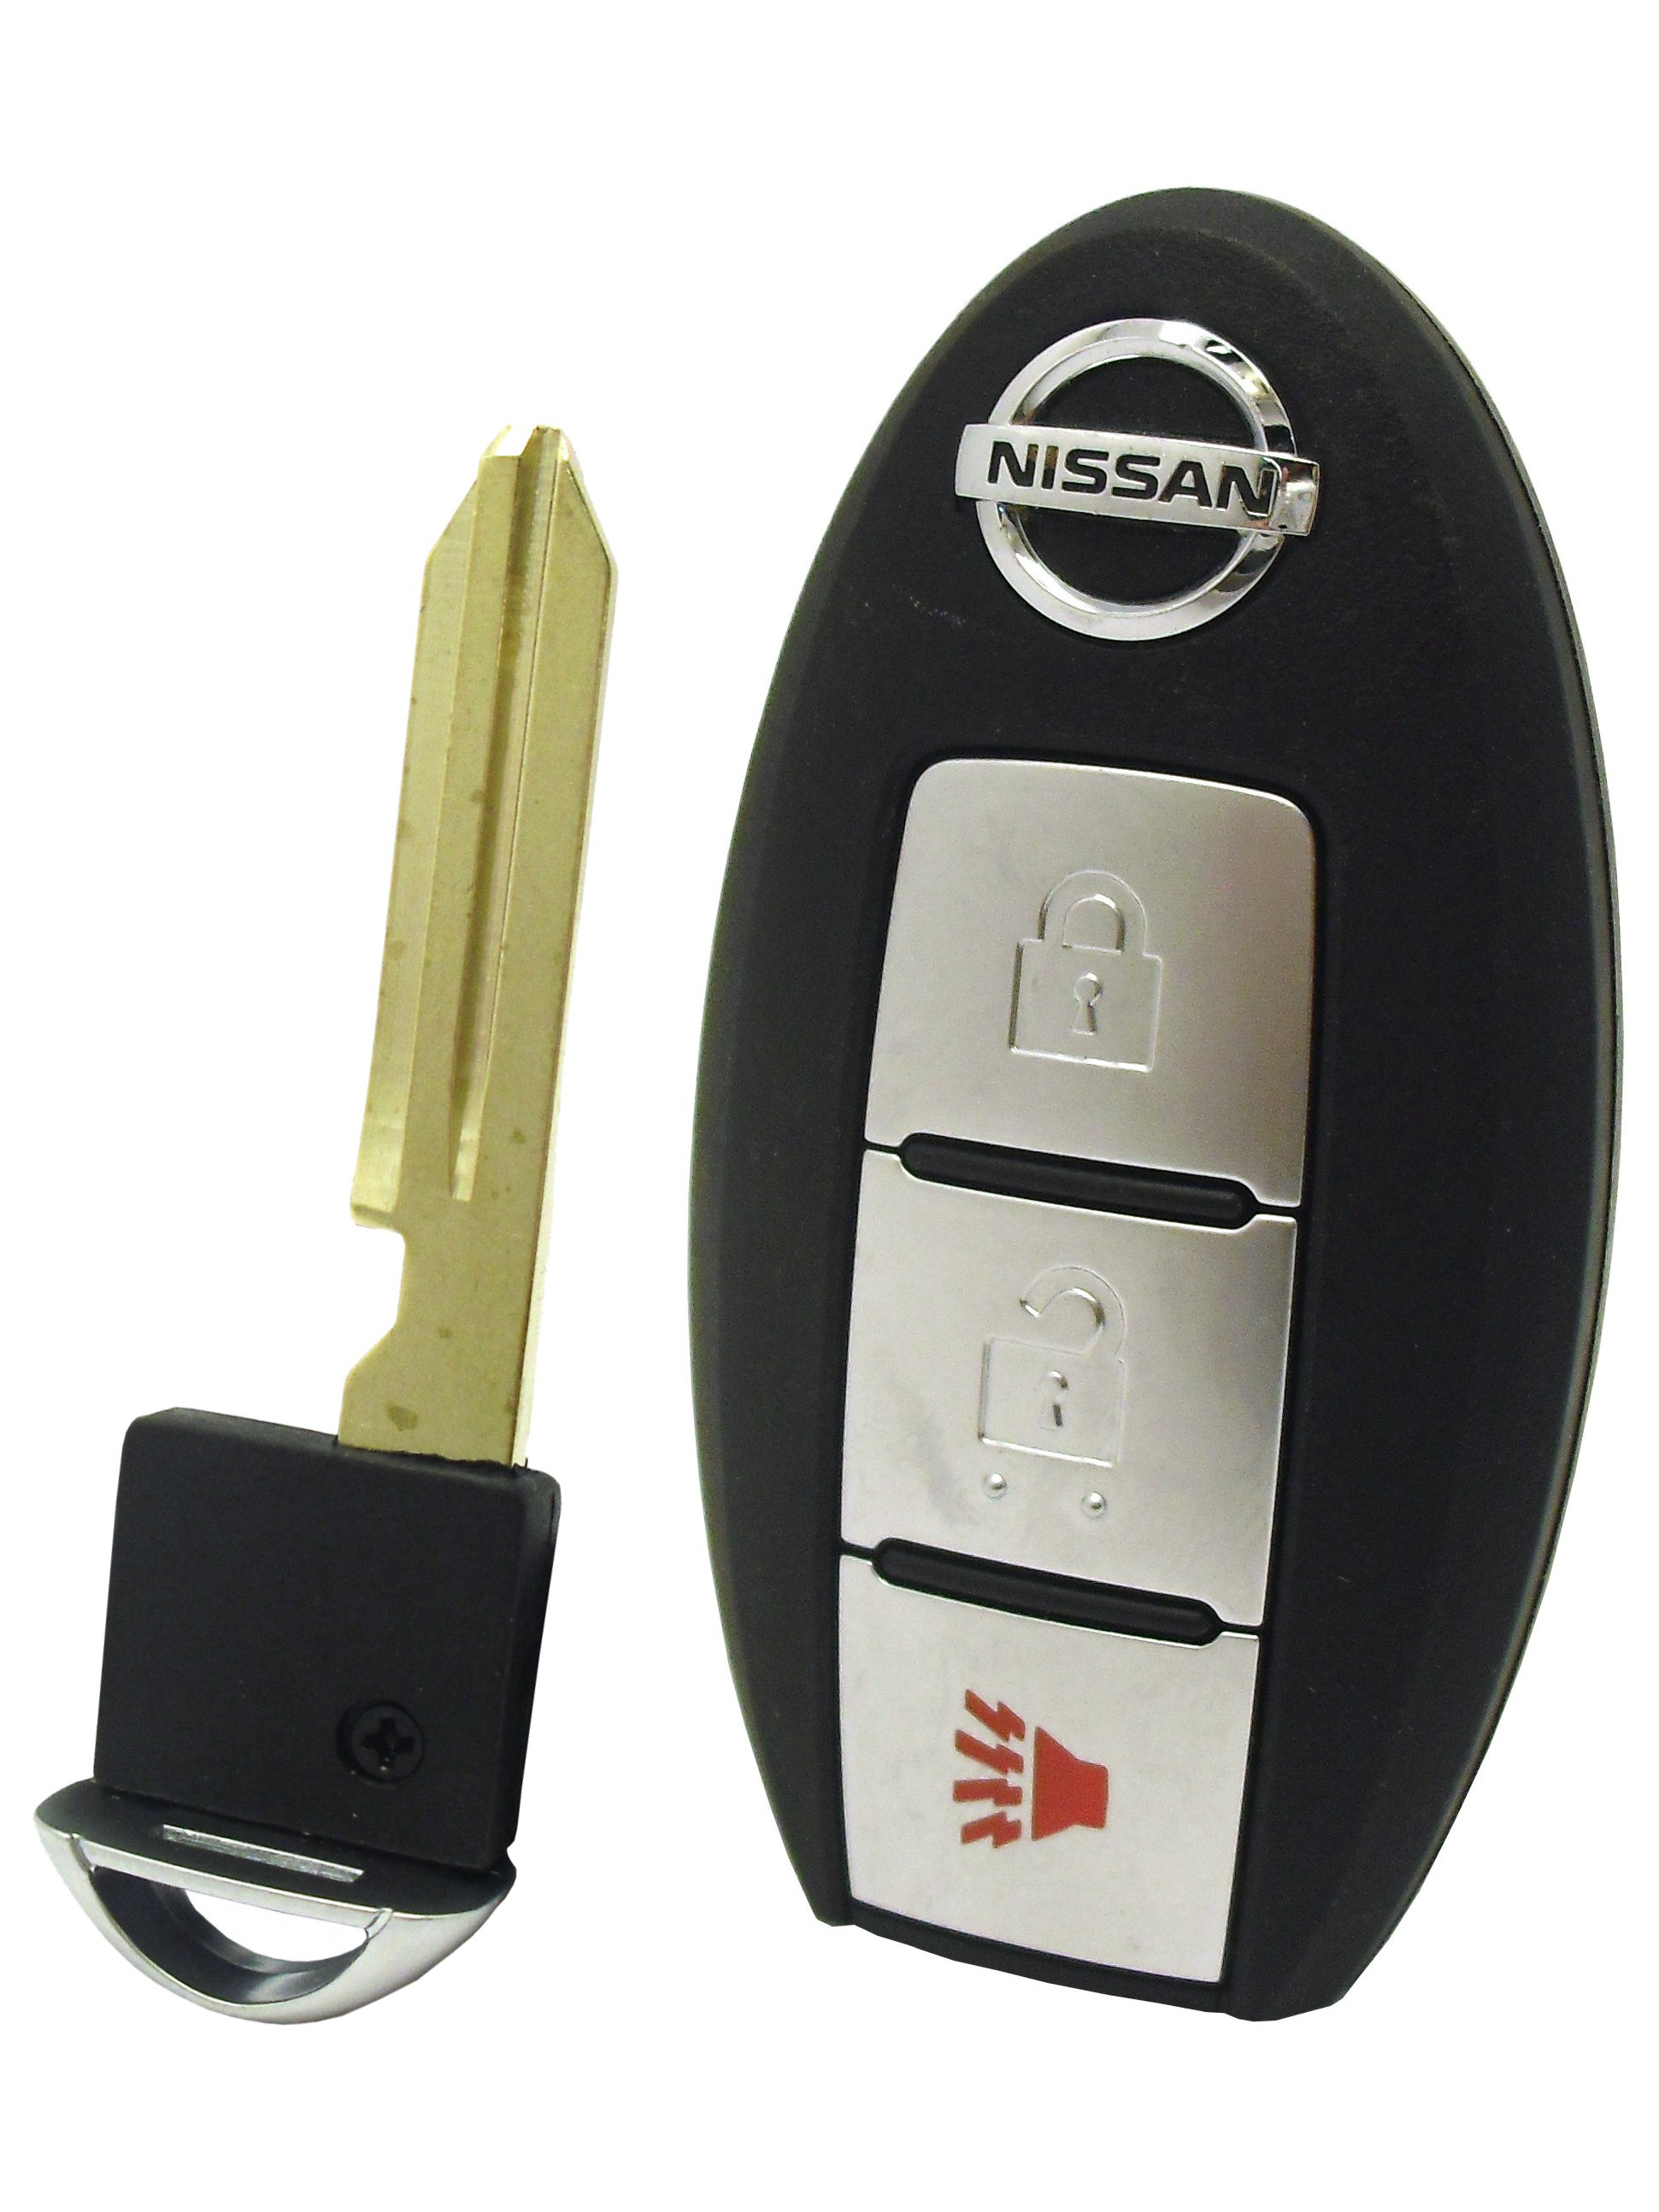 2007 nissan murano key fob not working